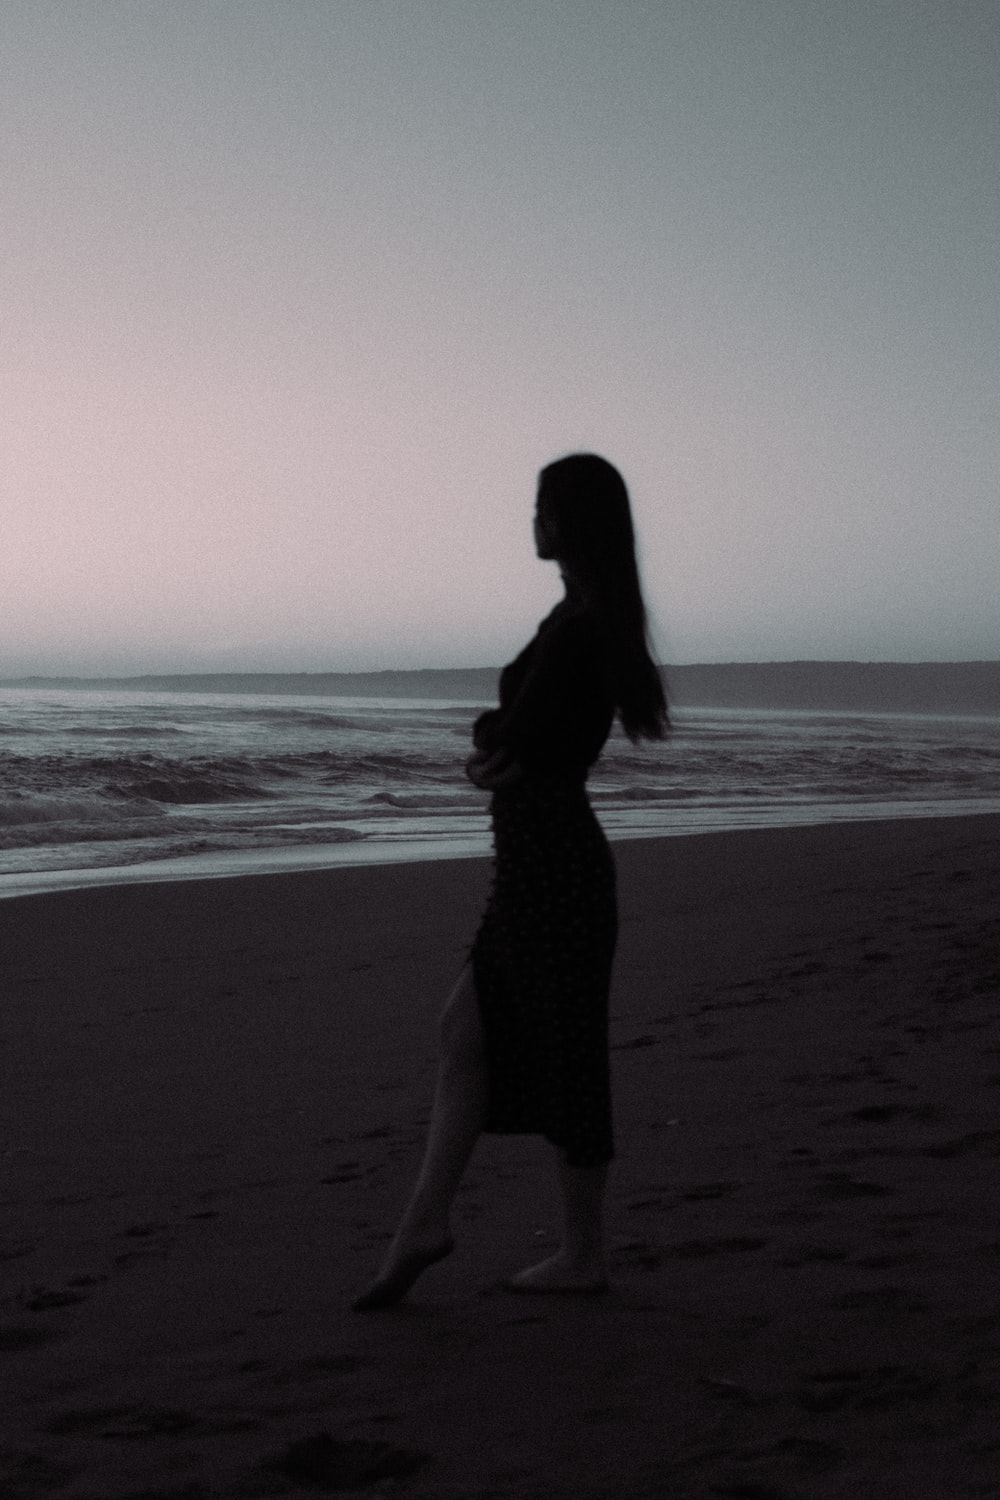 woman in black dress standing on beach during daytime